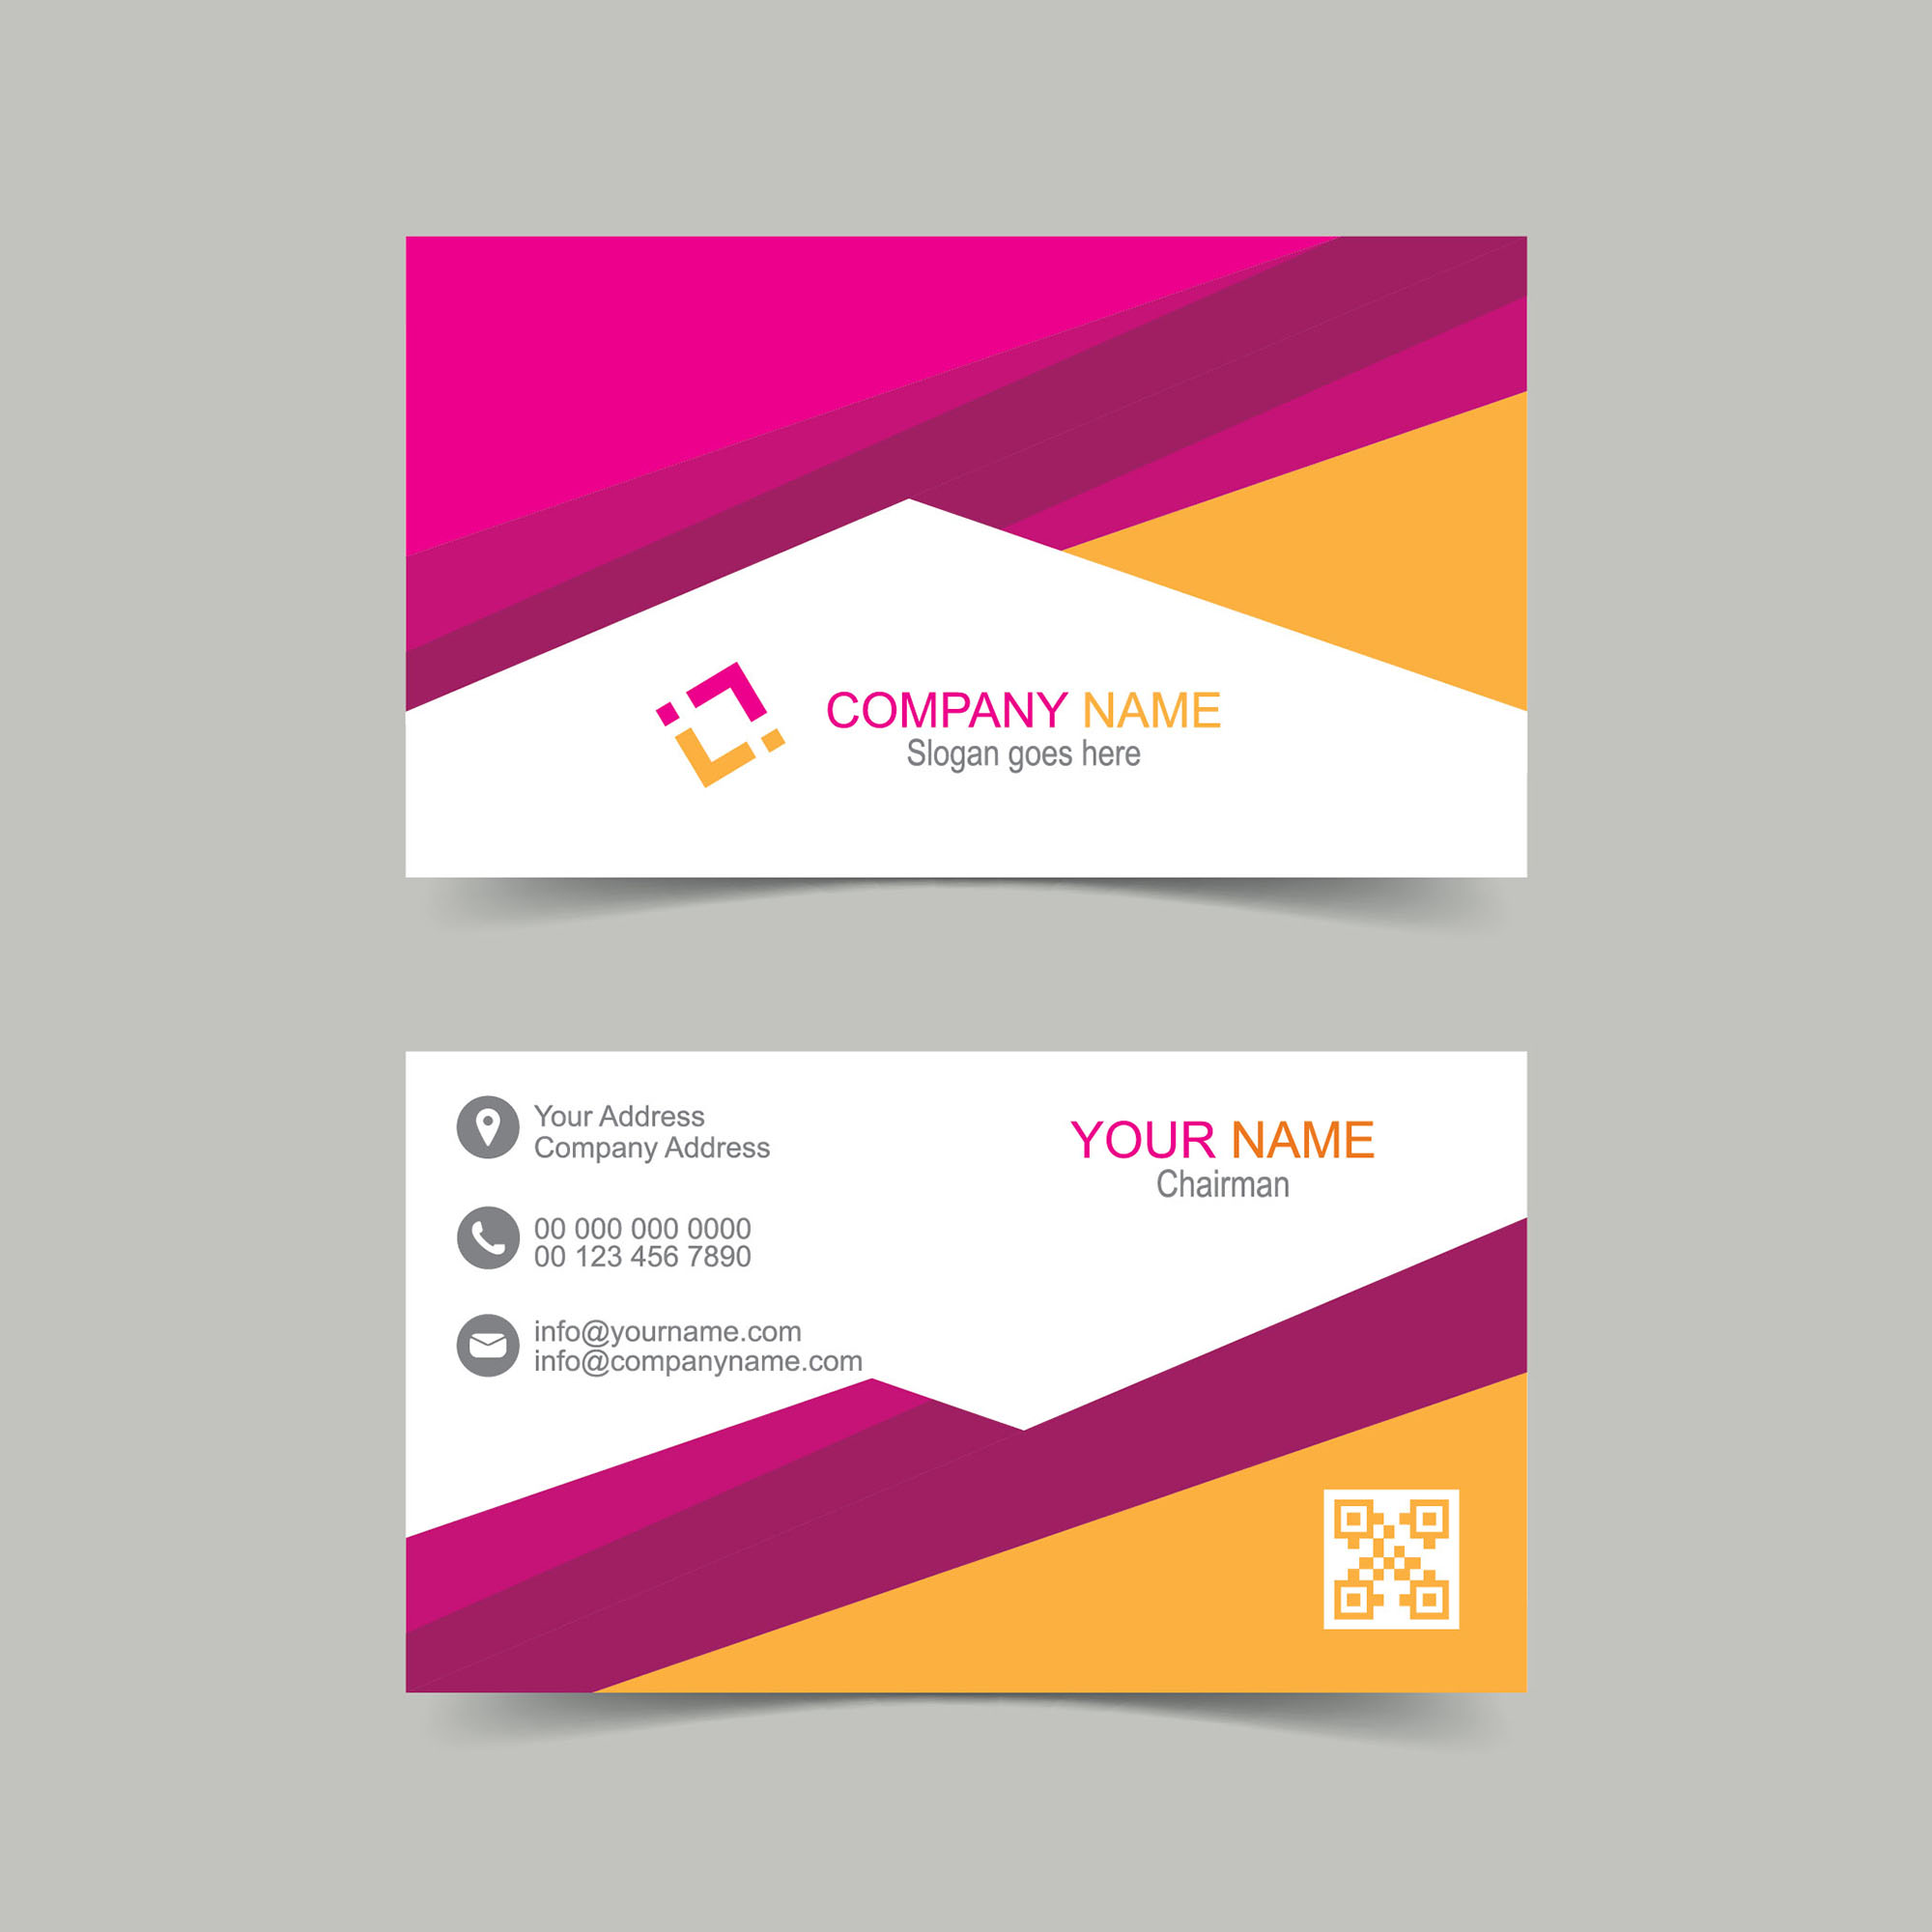 Vector business card design free download wisxi business card business cards business card design business card template design templates colourmoves